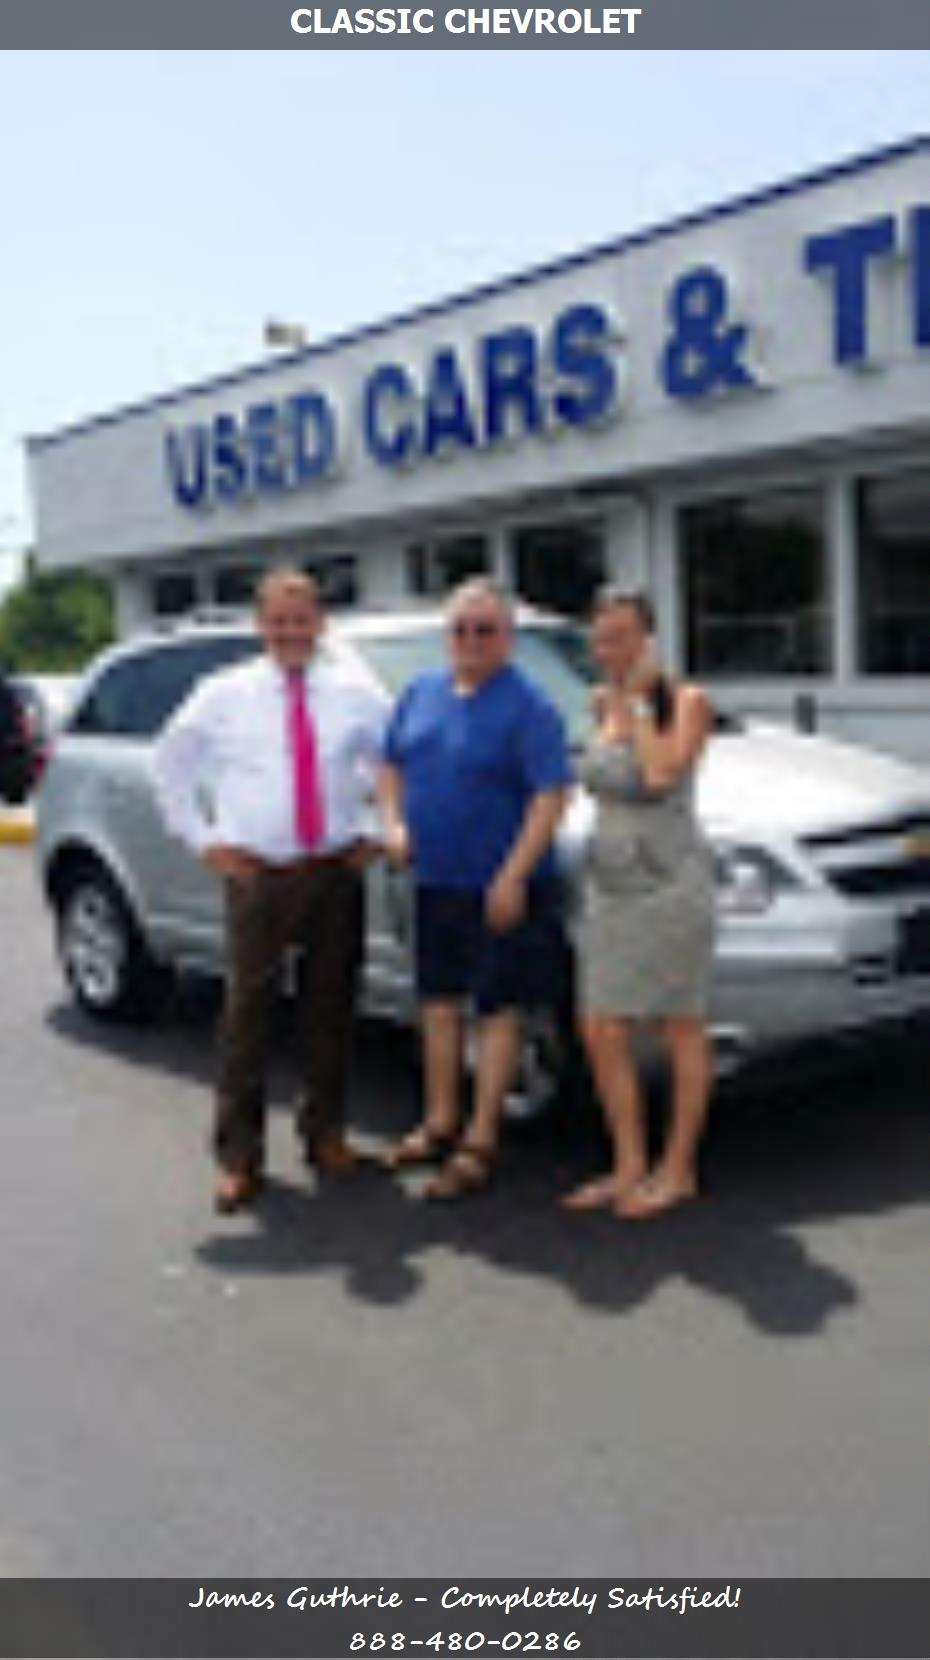 buy 2015 chevrolet captiva classic chevrolet owasso ok james guthrie. Cars Review. Best American Auto & Cars Review